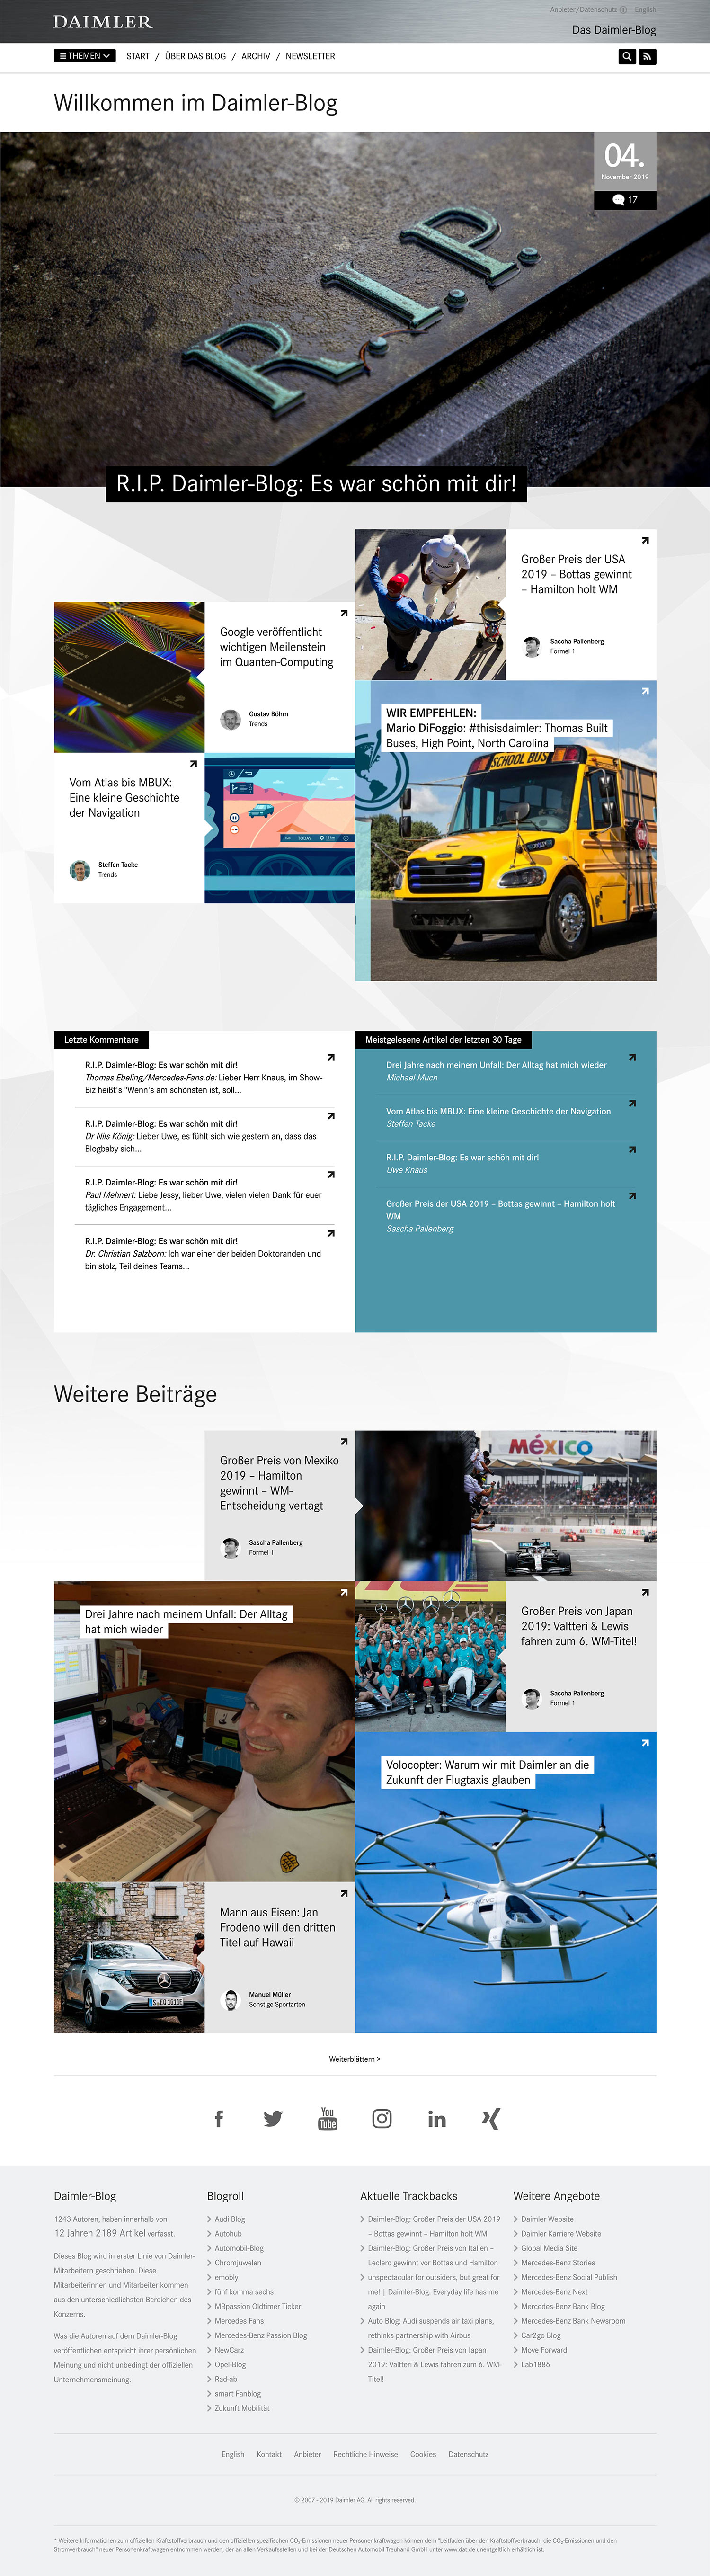 corporate blog daimler ueberblick 2019 - RIP Daimler Blog